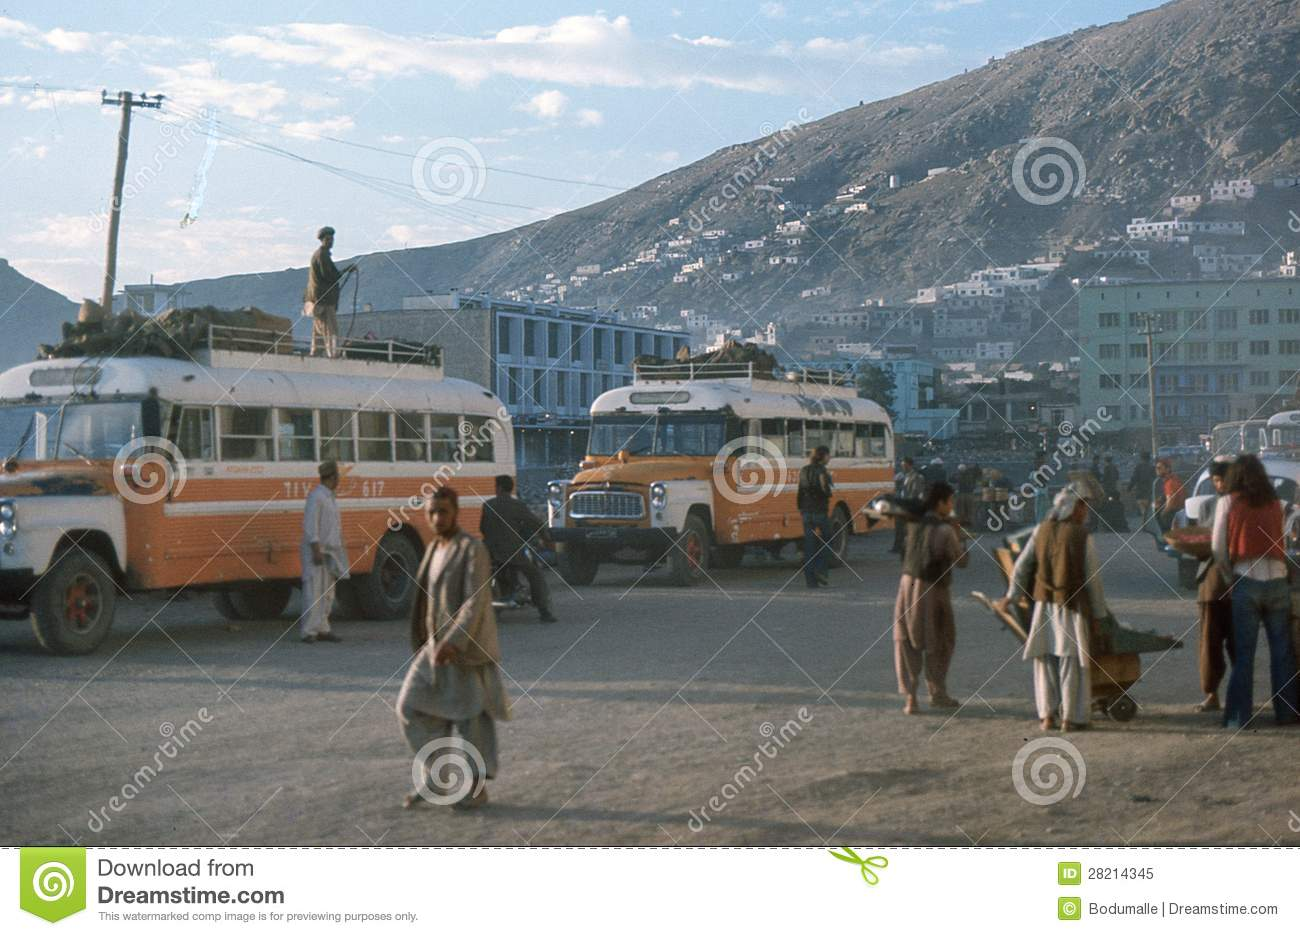 1975. Afghanistan. Bus station in Kabul.